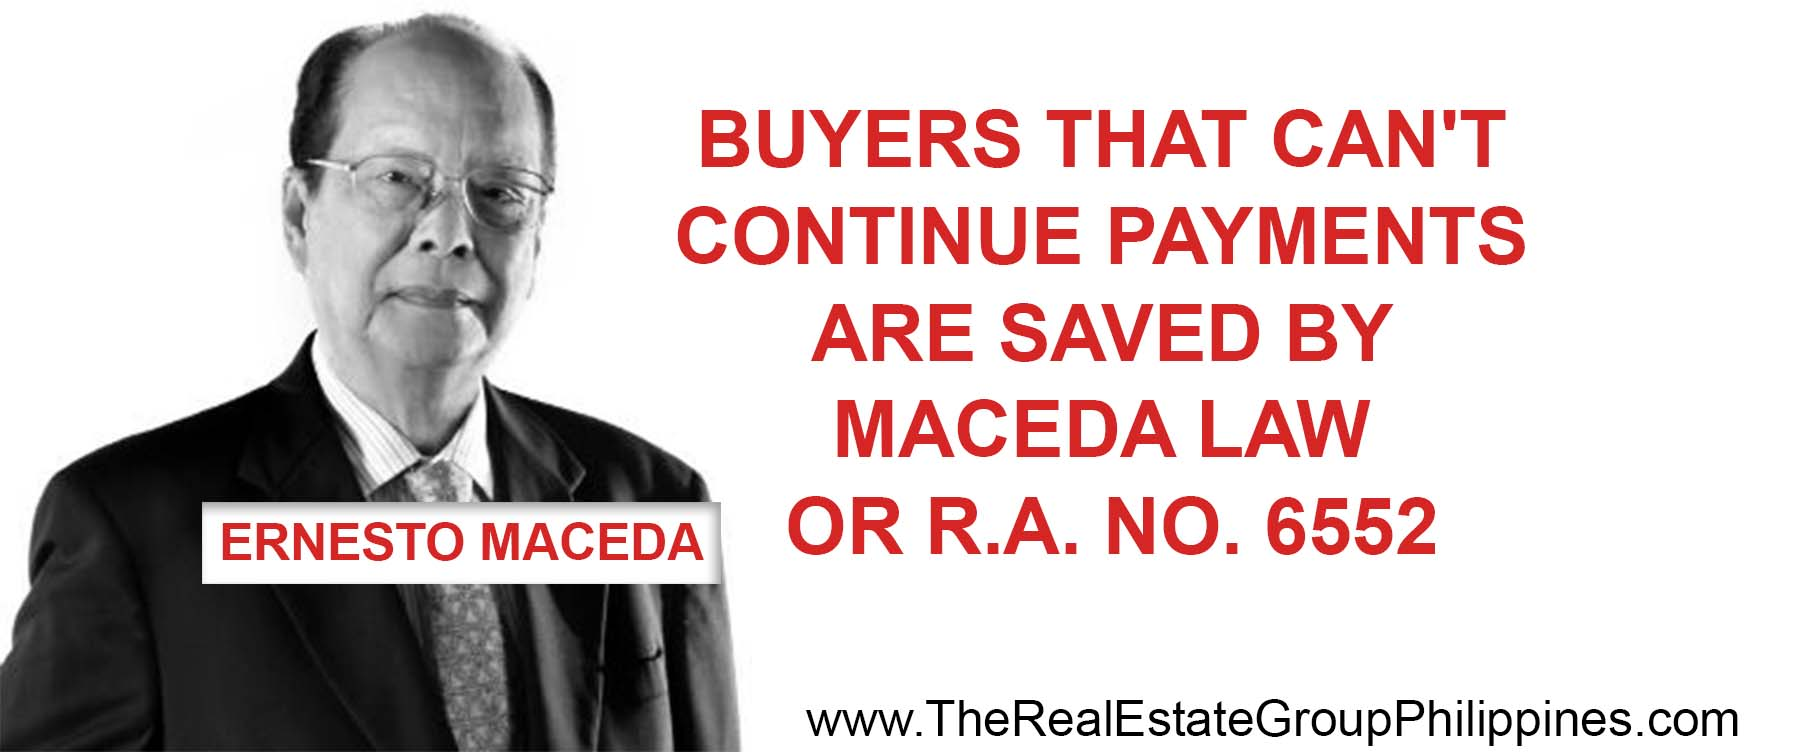 BUYERS THAT CAN'T CONTINUE PAYMENTS ARE SAVED BY MACEDA LAW OR R.A. NO. 6552